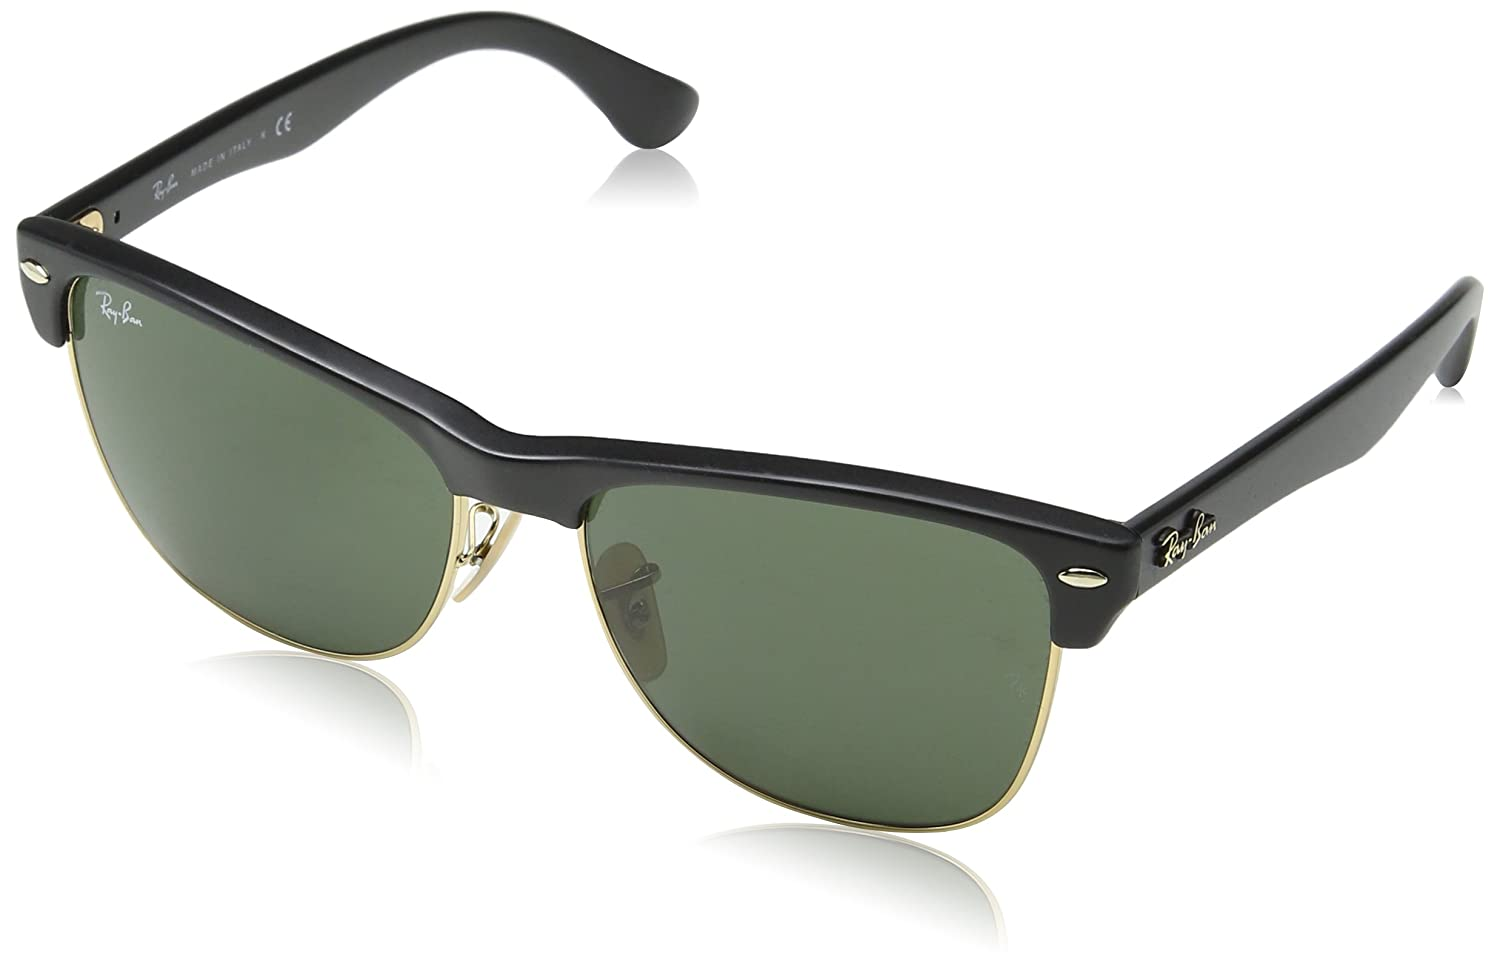 Ray-Ban RB4175 Clubmaster Square Oversized Sunglasses